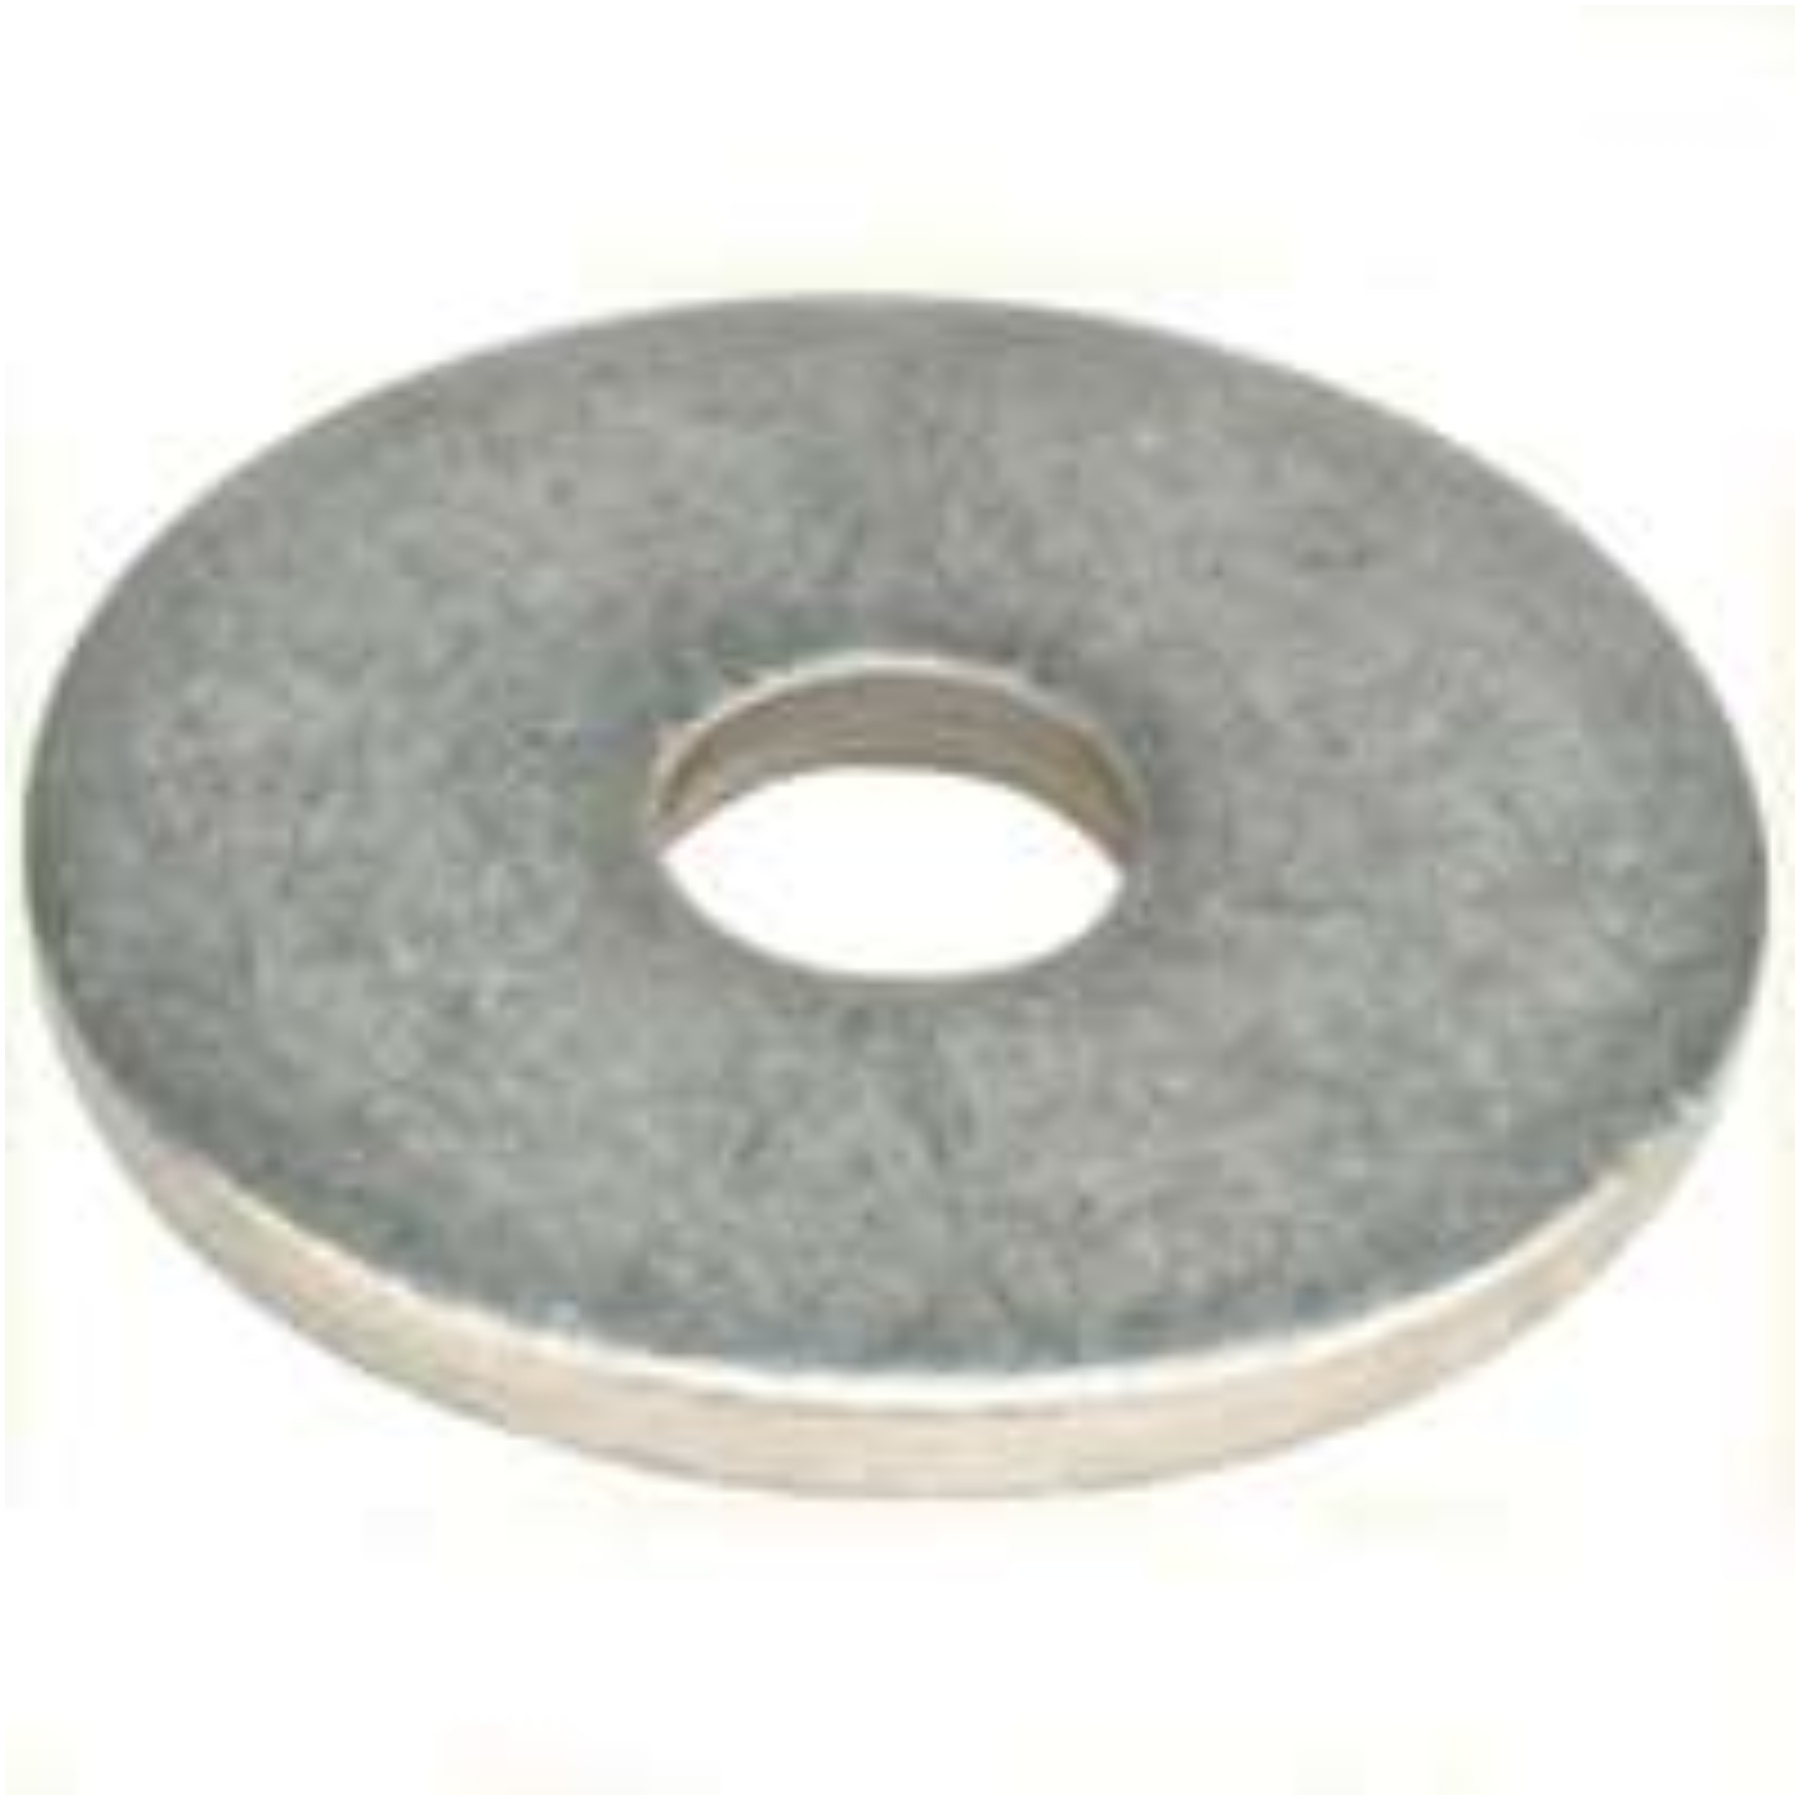 Porteous 00370-3200-424 USS Standard Flat Washer, 3/4 in, Hot Dip Galvanized